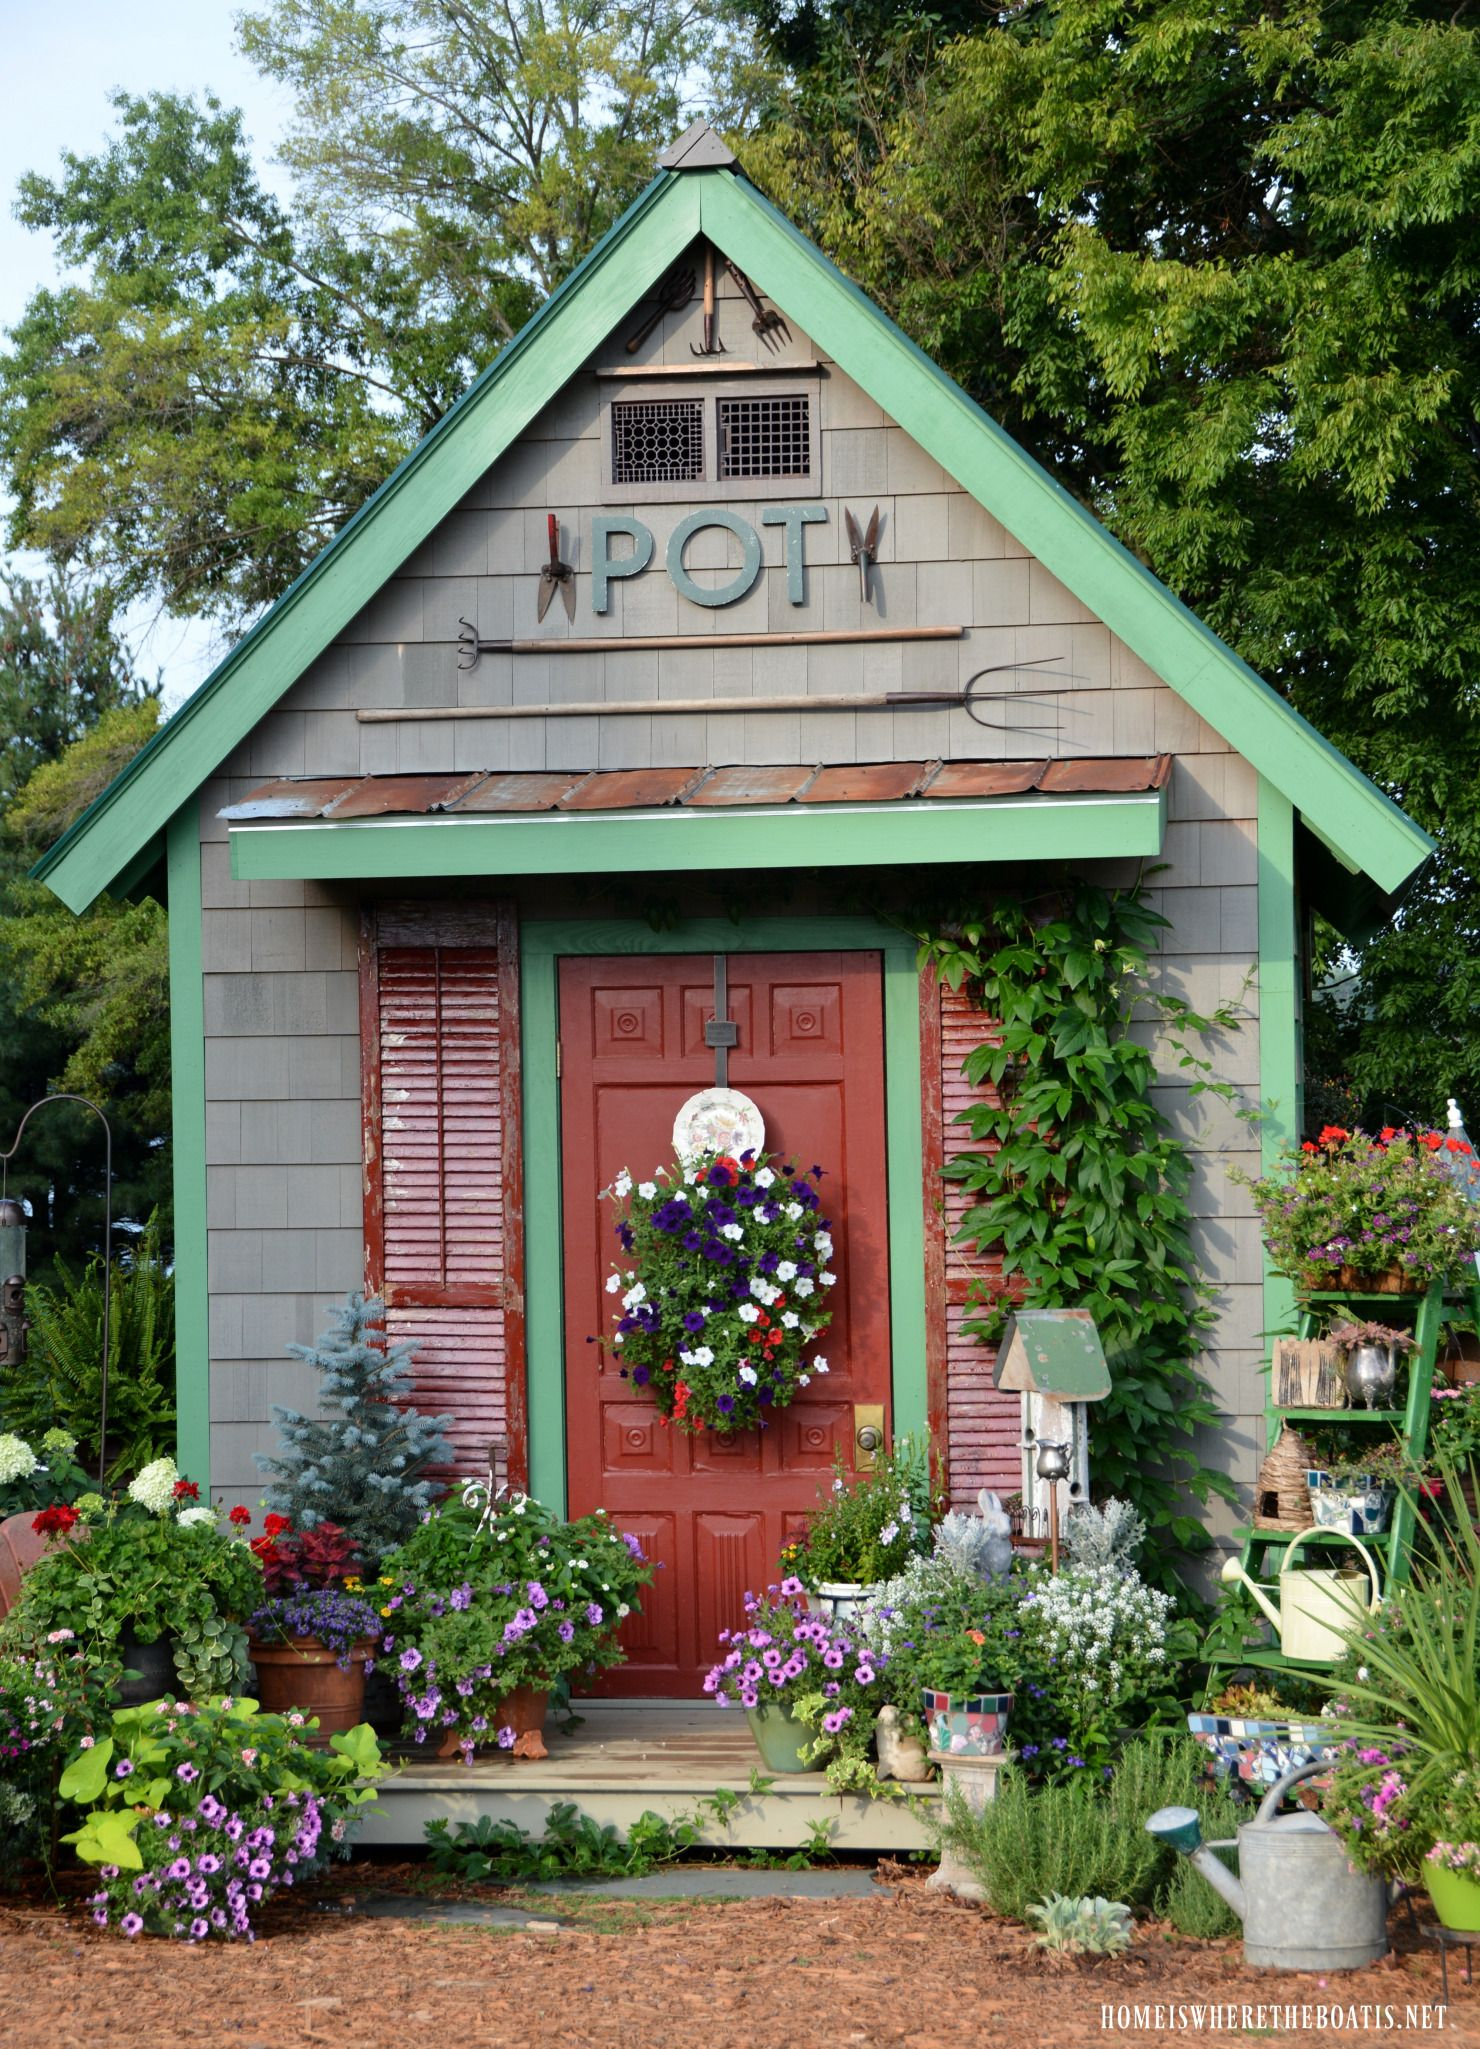 Garden Potting Shed Potting shed featured in she sheds a room of your own gardens potting shed featured in she sheds a room of your own workwithnaturefo